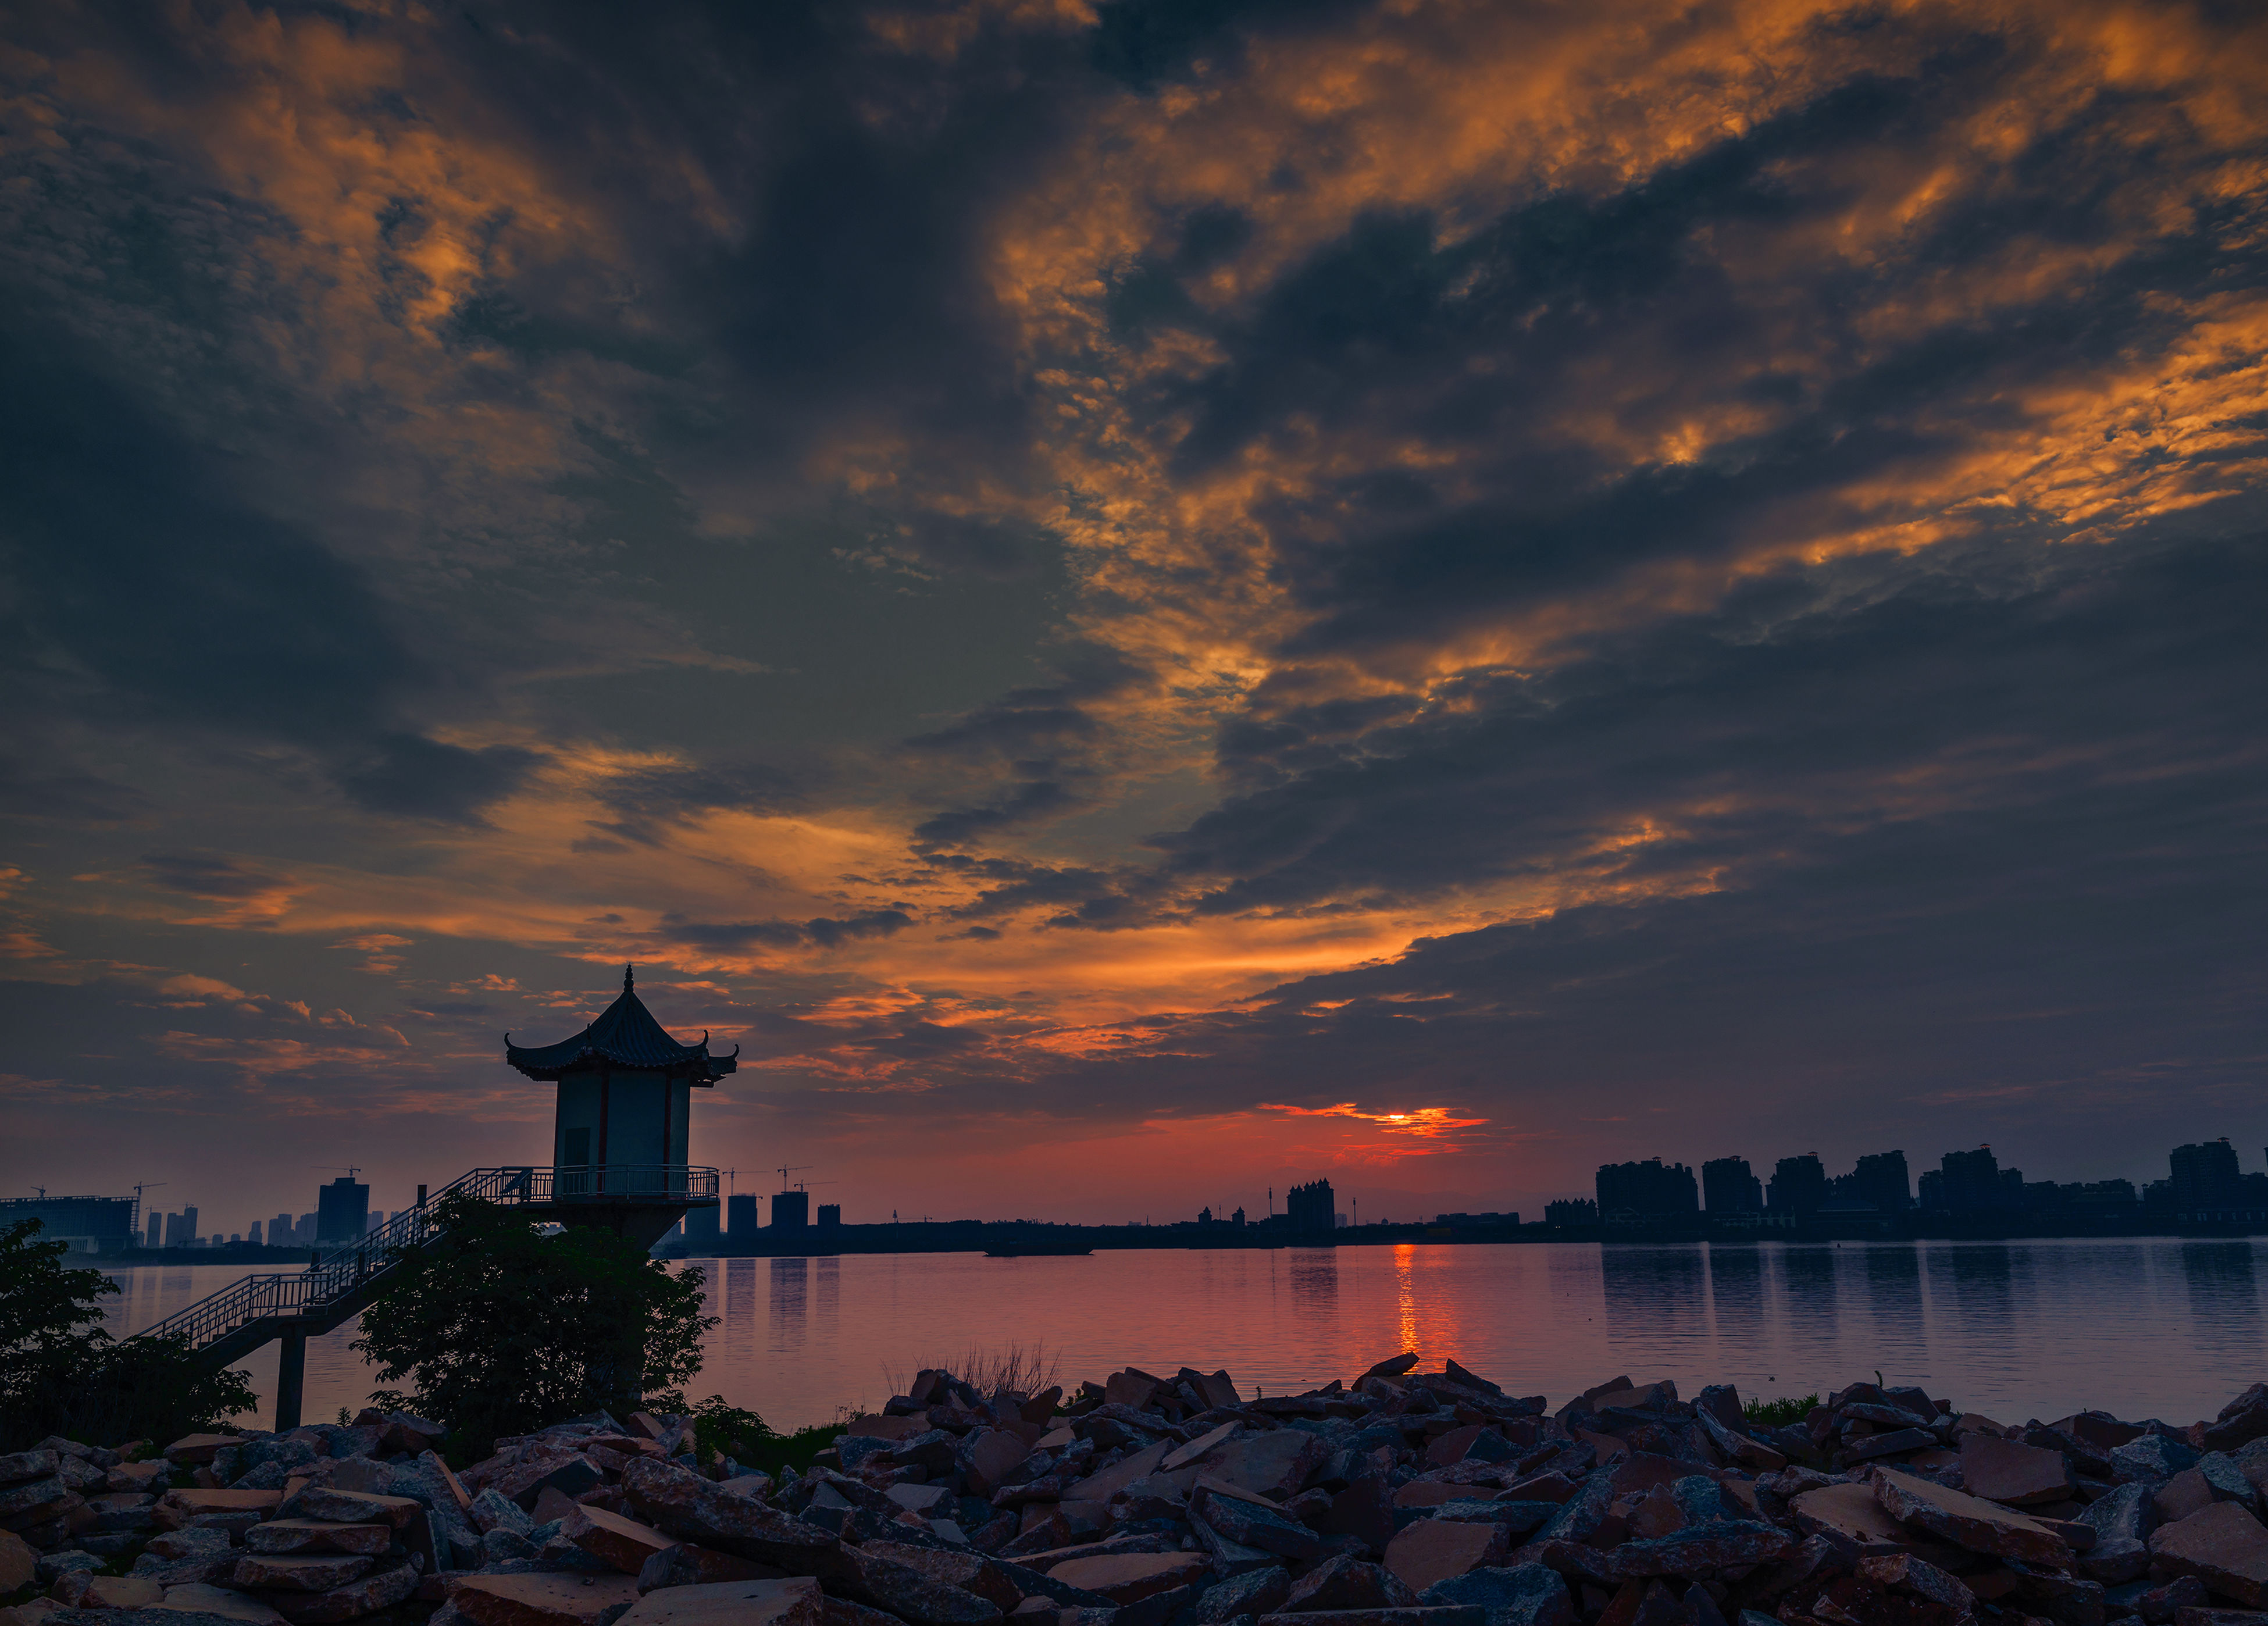 sunset, sky, cloud - sky, water, orange color, built structure, architecture, building exterior, cloudy, scenics, beauty in nature, tranquility, nature, lighthouse, cloud, tranquil scene, idyllic, silhouette, sea, dramatic sky